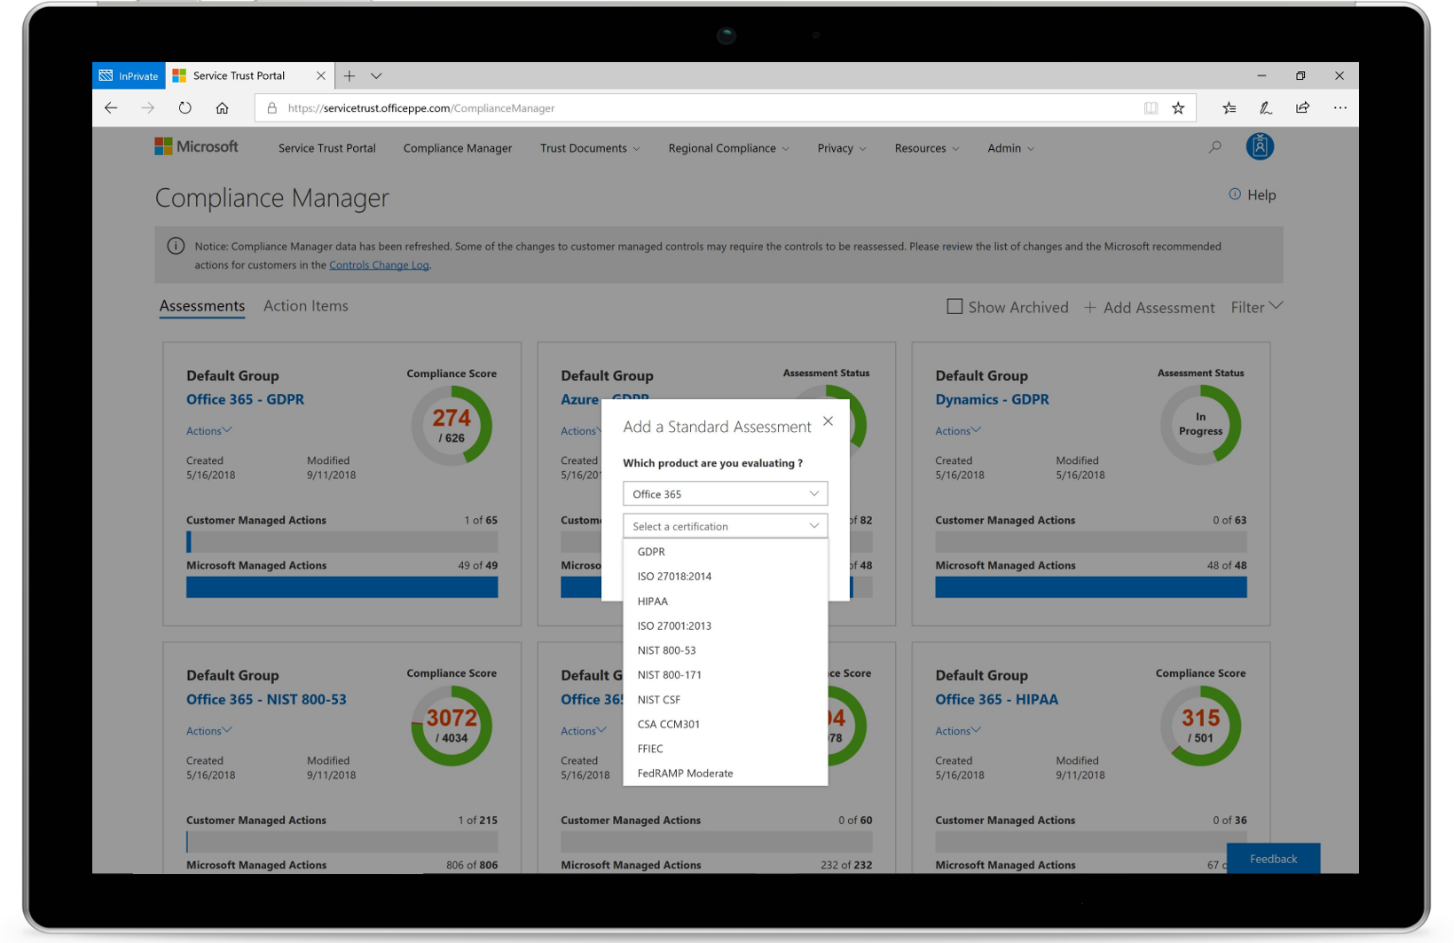 Image shows the Compliance Manager on a tablet.